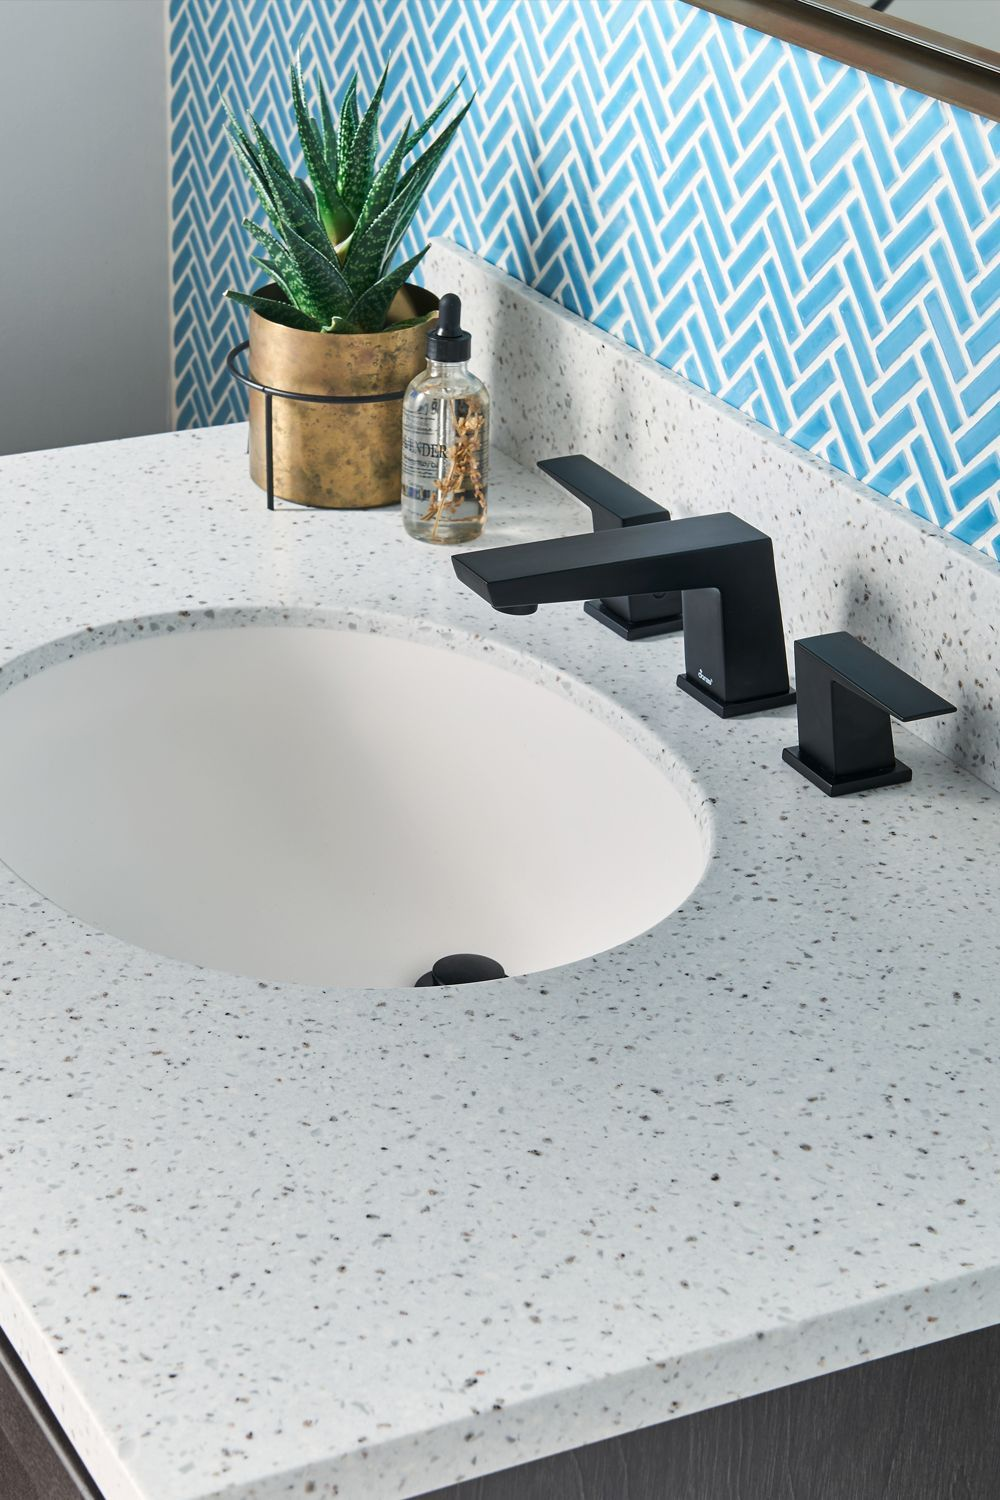 Solid Surface Vanity Tops For Bathrooms Wolf Home Products Solid Surface Vanity Top Quartz Bathroom Vanity Tops Vanity Top